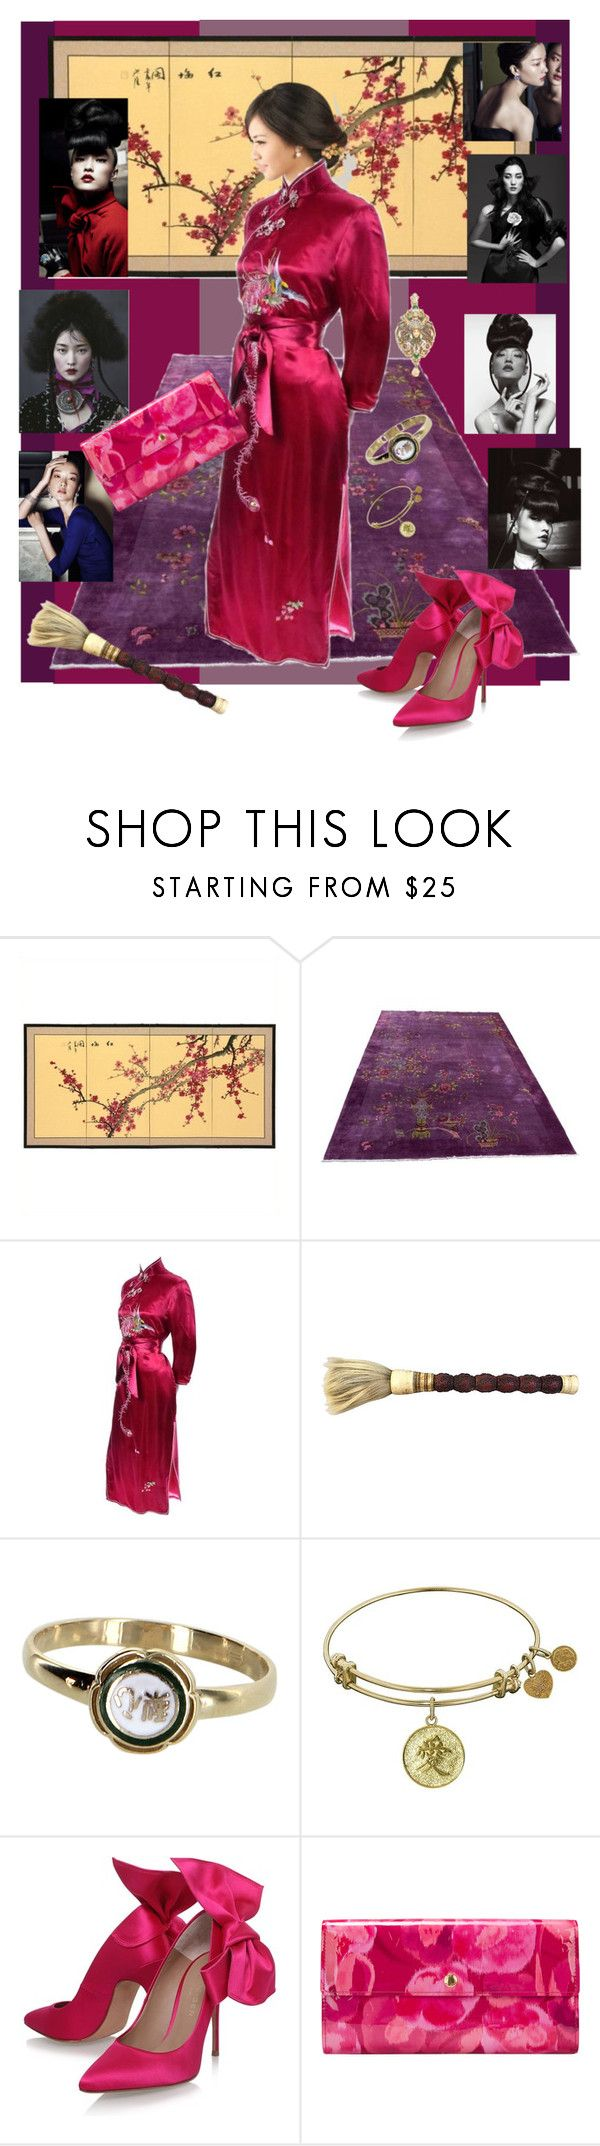 """""""Celebrating Beauty in China"""" by mary-kay-de-jesus ❤ liked on Polyvore featuring Vintage, Kurt Geiger, Vision and Louis Vuitton"""